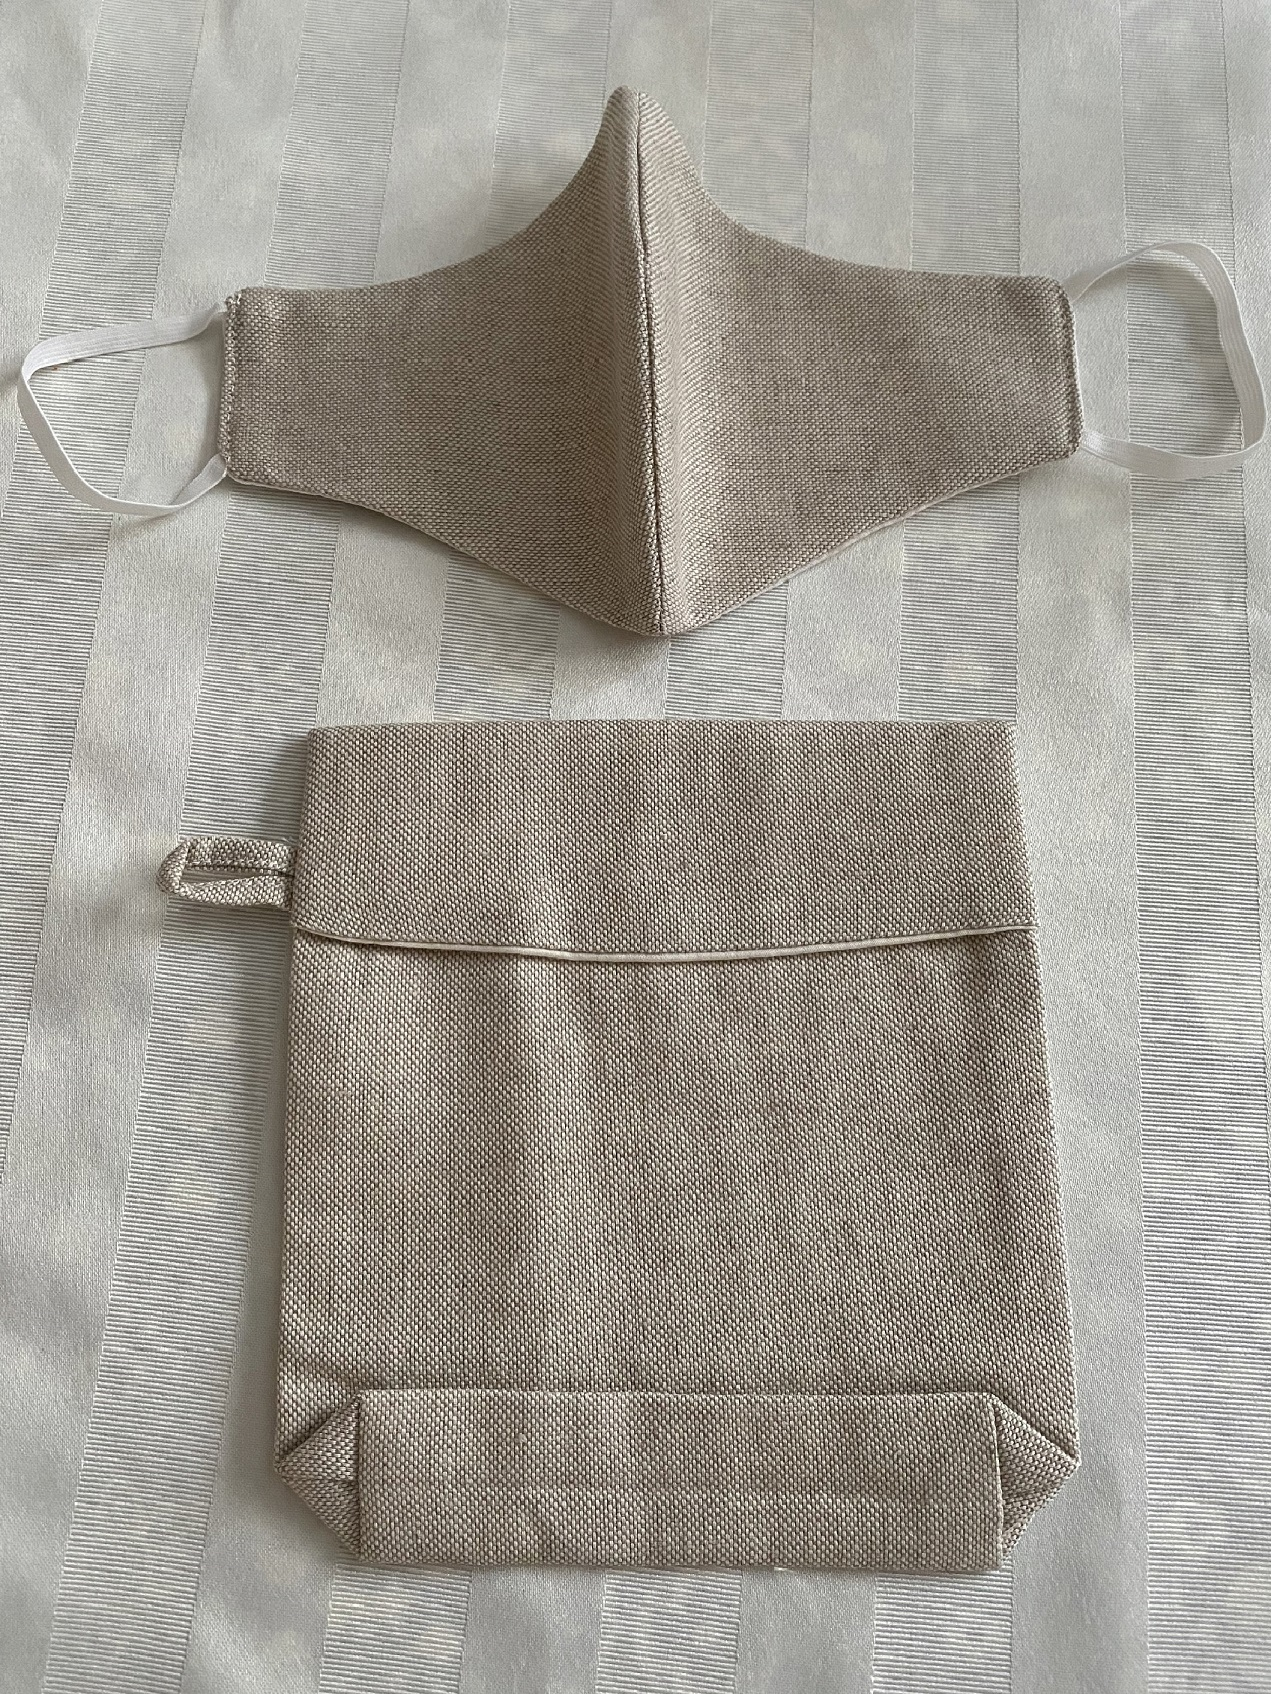 Matching pouch available